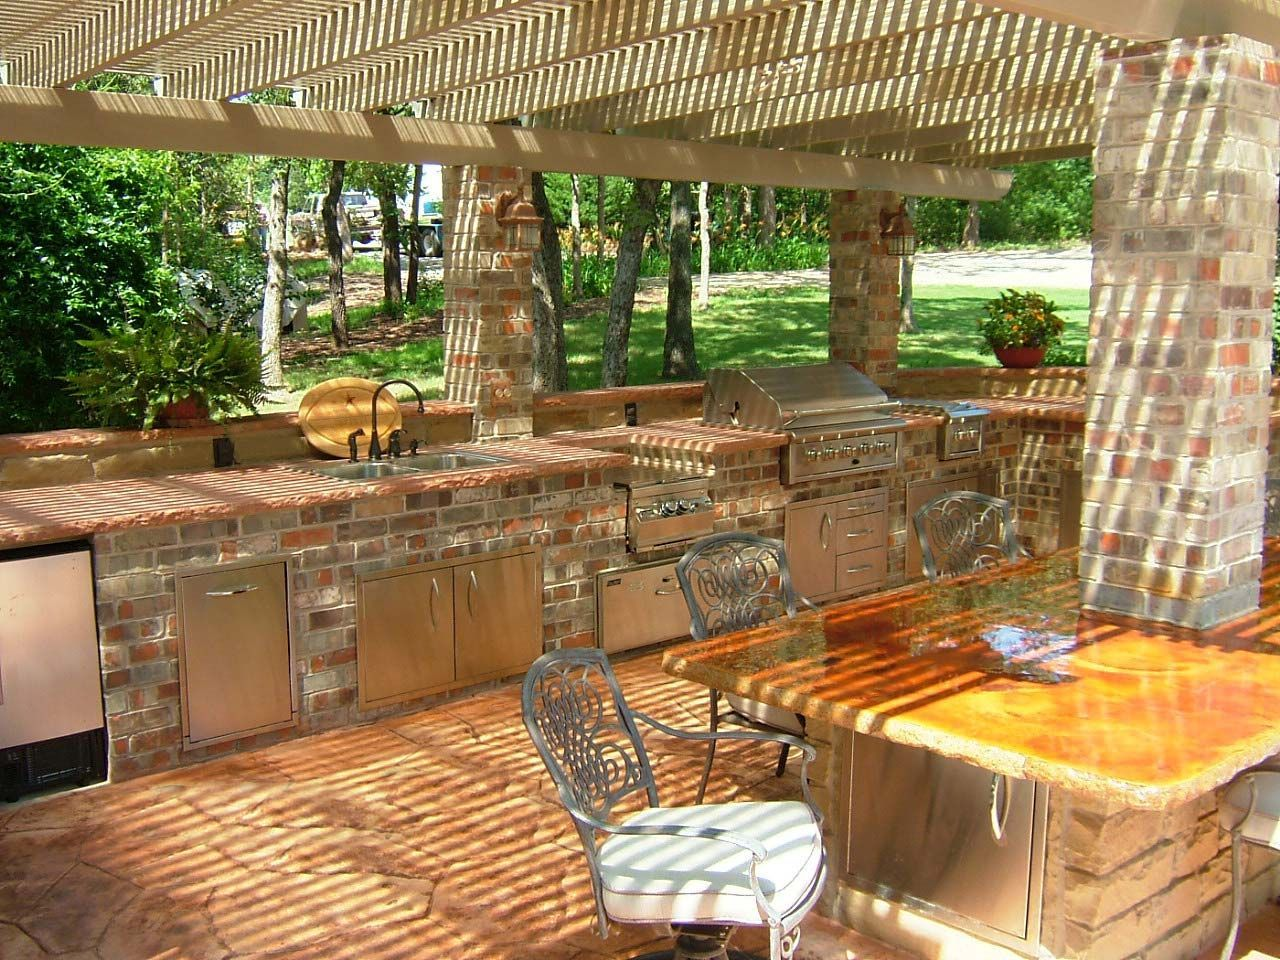 10 outdoor kitchen ideas and design on a budget to experience a fun cooking outdoor kitchen on outdoor kitchen ideas on a budget id=76096